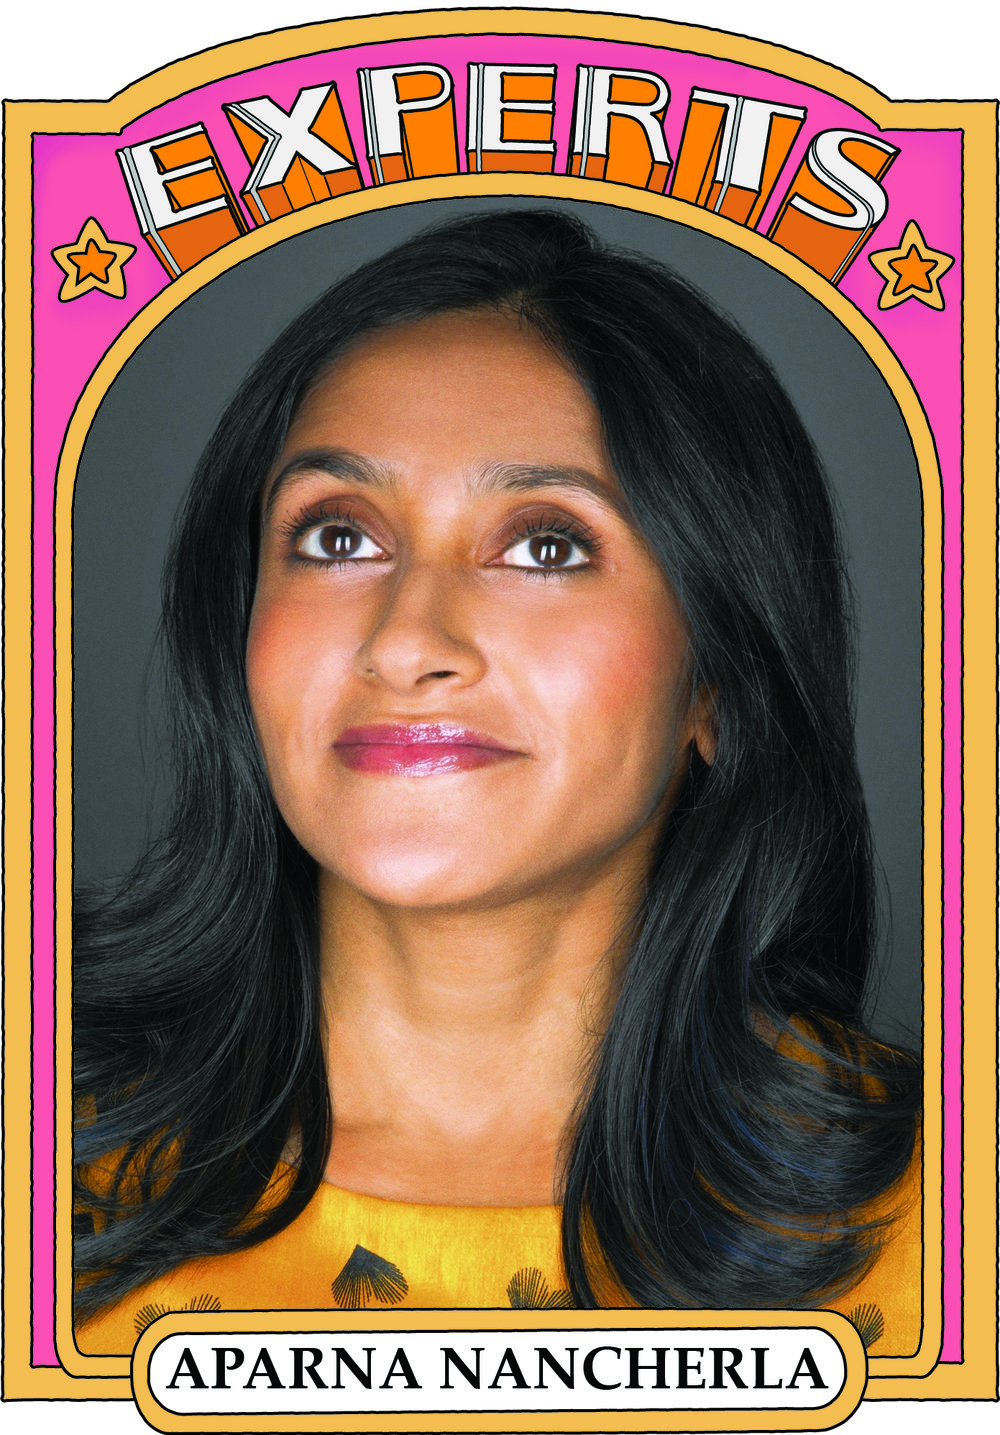 Big Breaks with Aparna Nancherla Experts Podcast